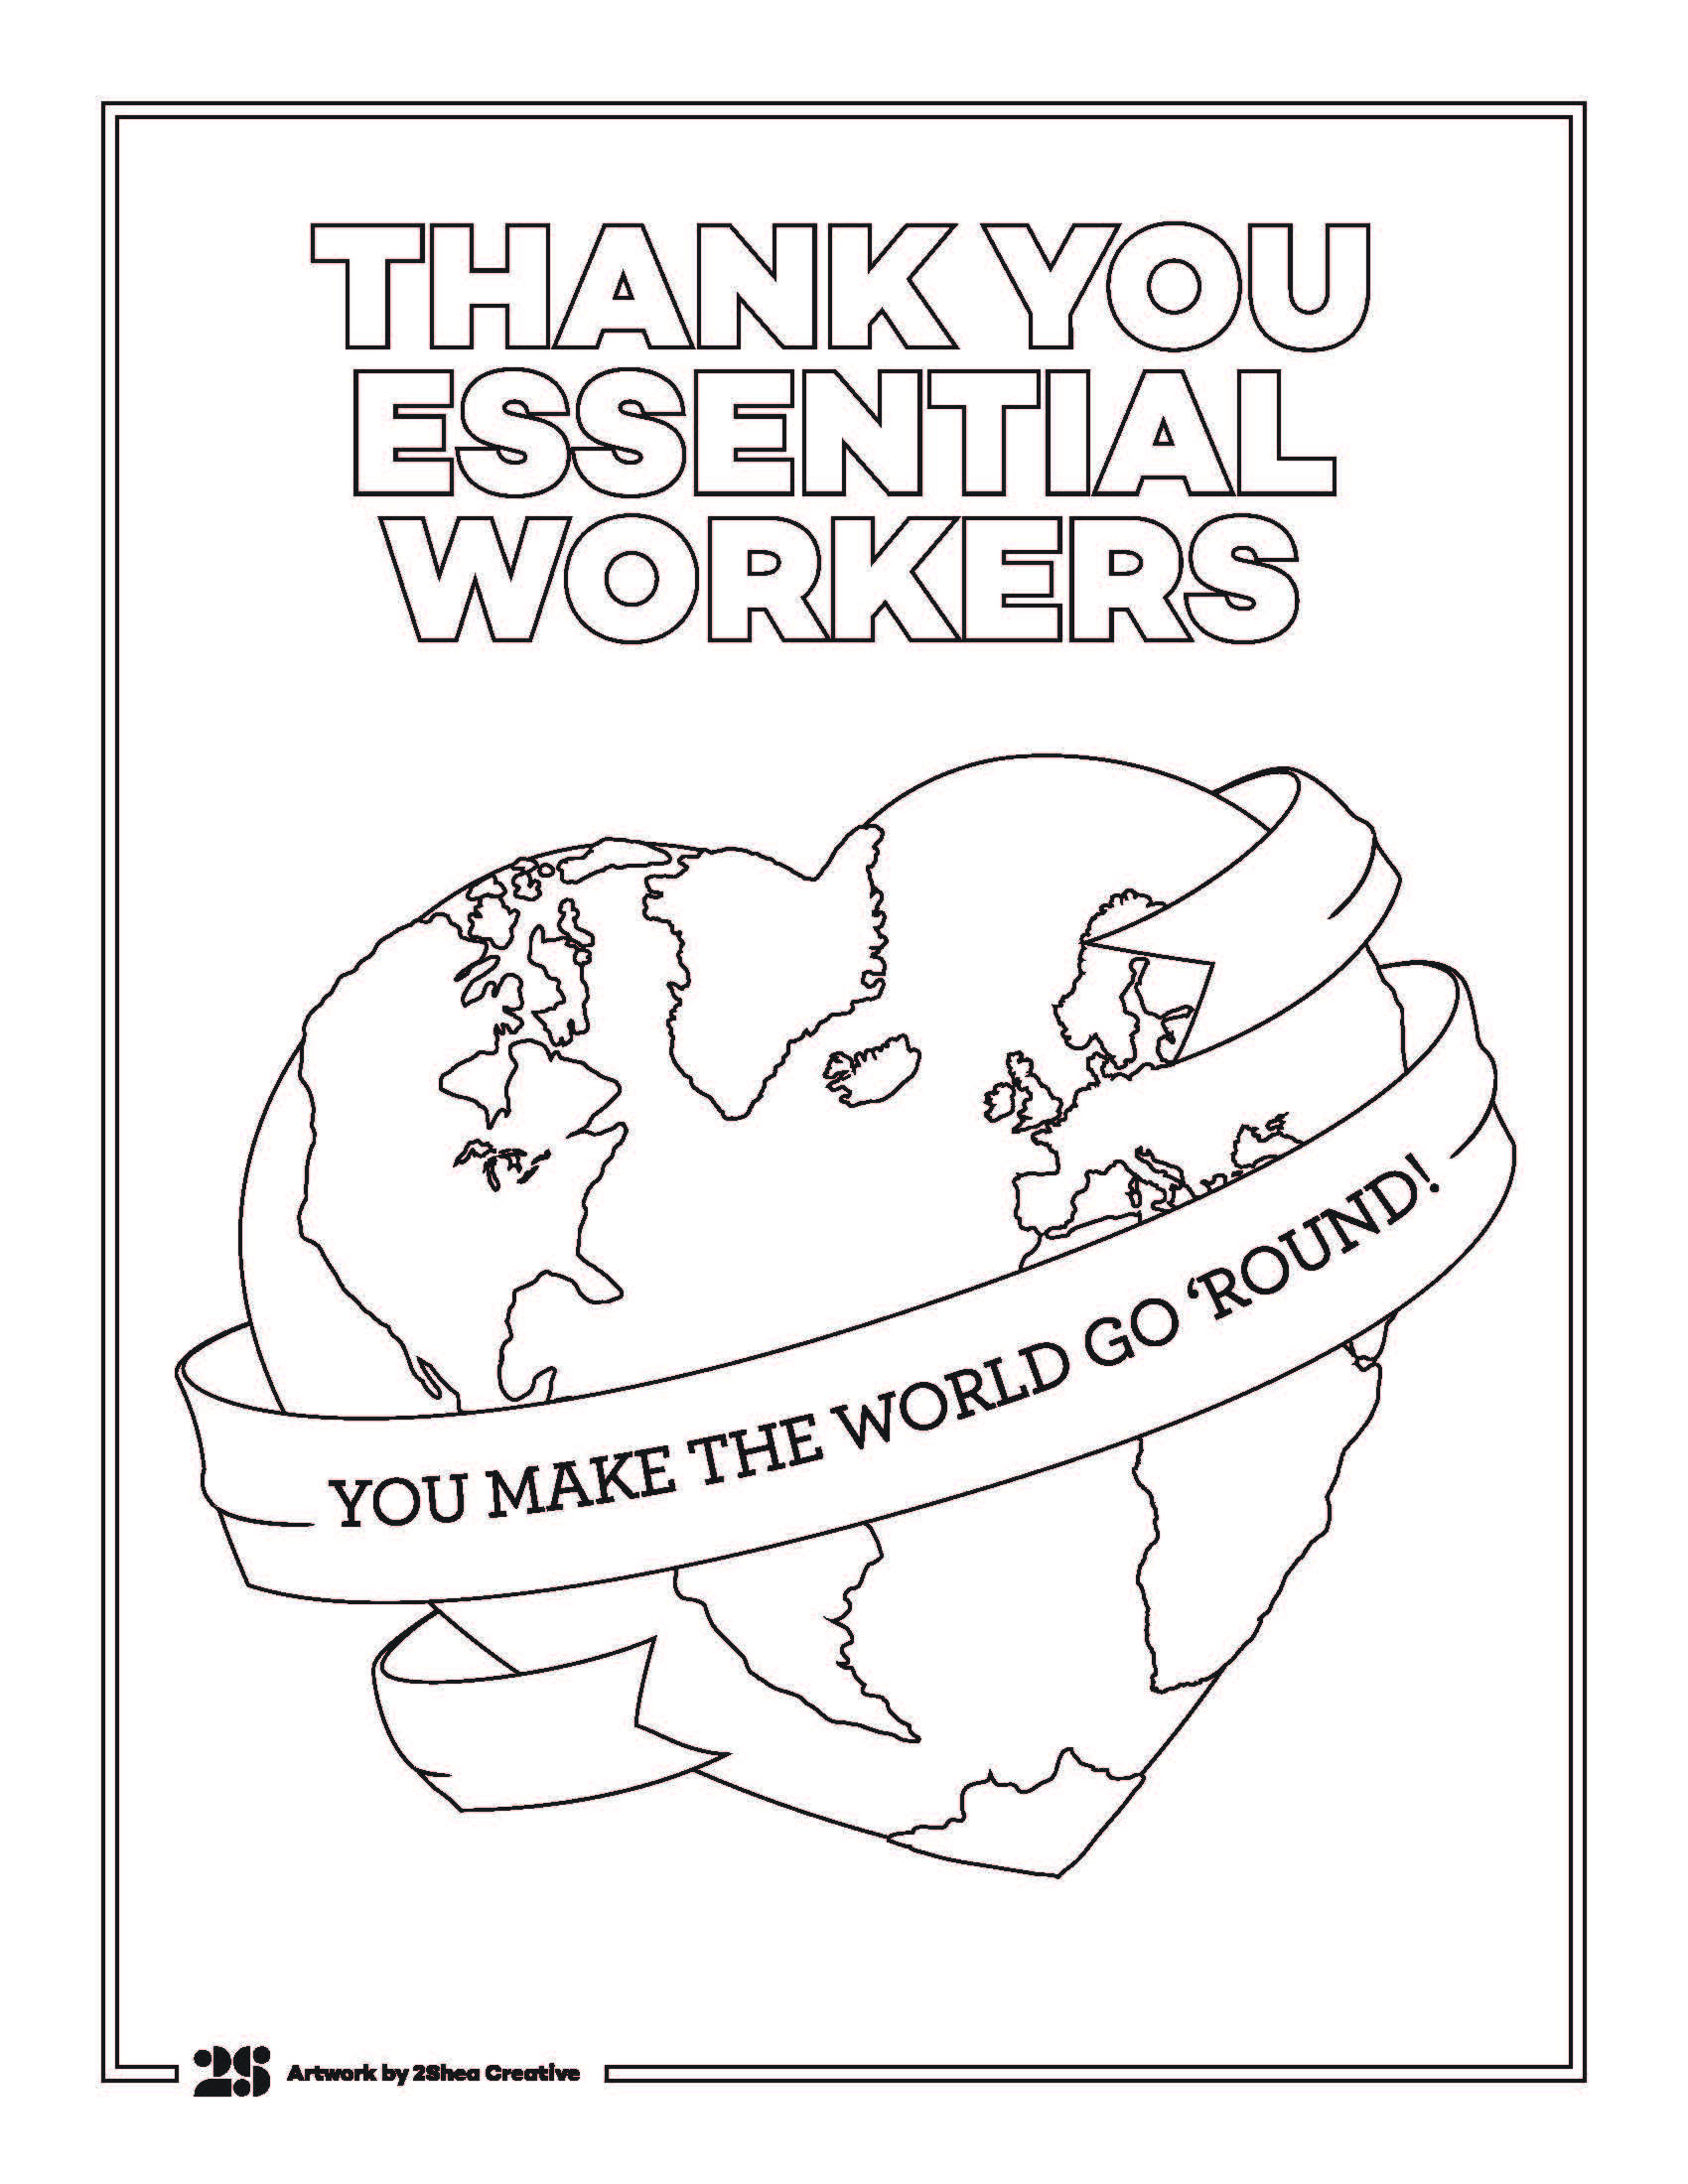 We Created This Coloring Page To Show Our Gratitude For All The Essential Workers That Continue To Make The World Go Ro Coloring Pages Nurse Art Coloring Books